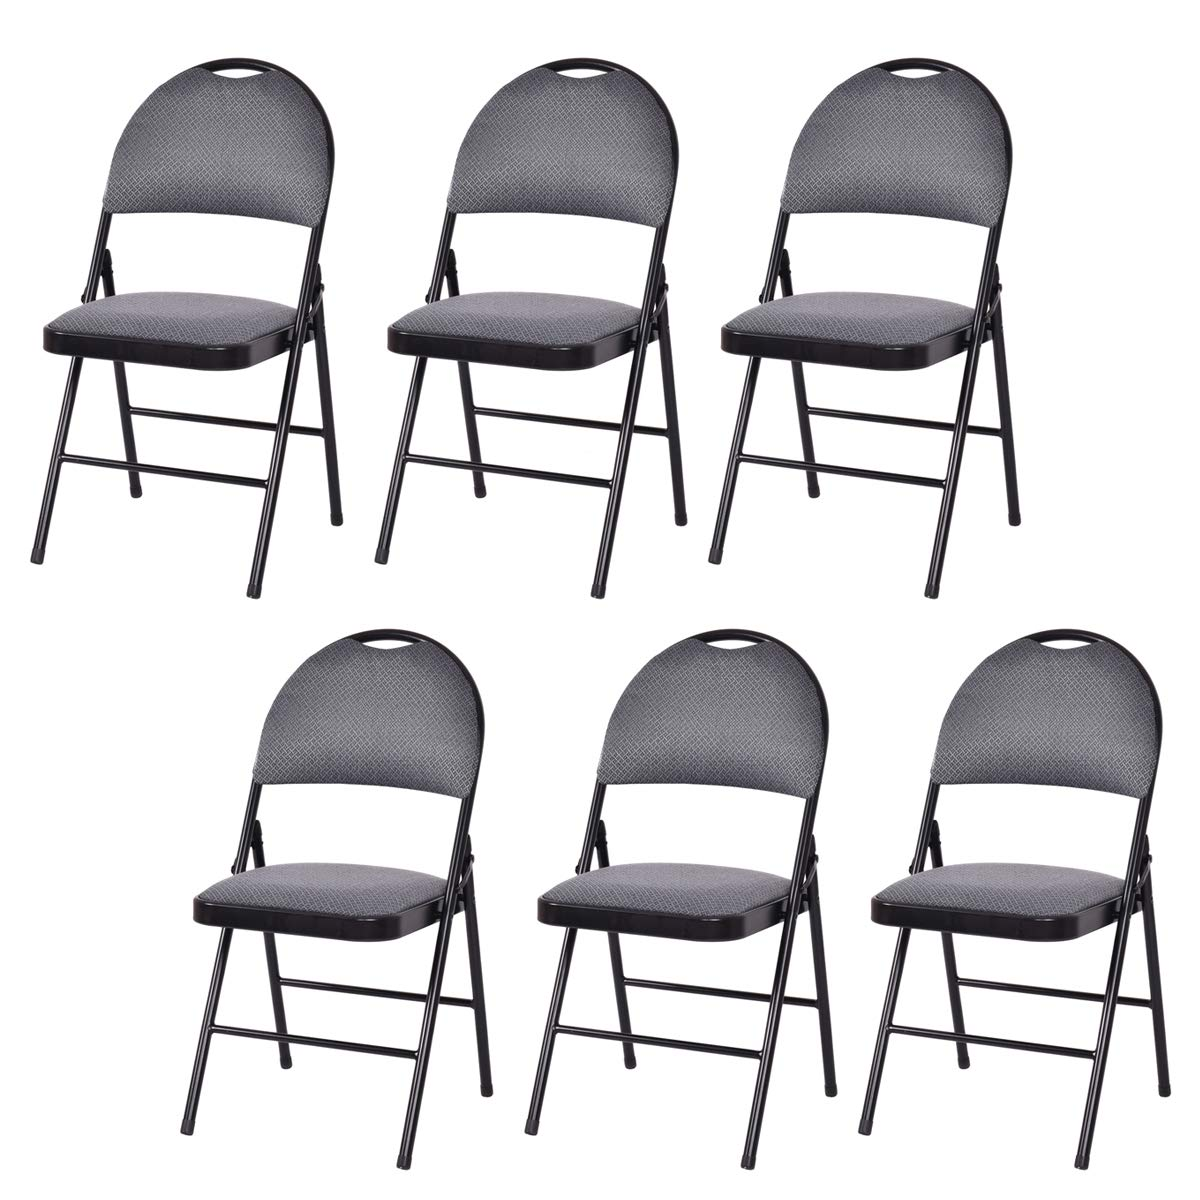 Giantex 6-Pack Folding Chair with Handle Hole, Upholstered Padded Seat and Back with Metal Frame for Home Office Party Use, Grey by Giantex